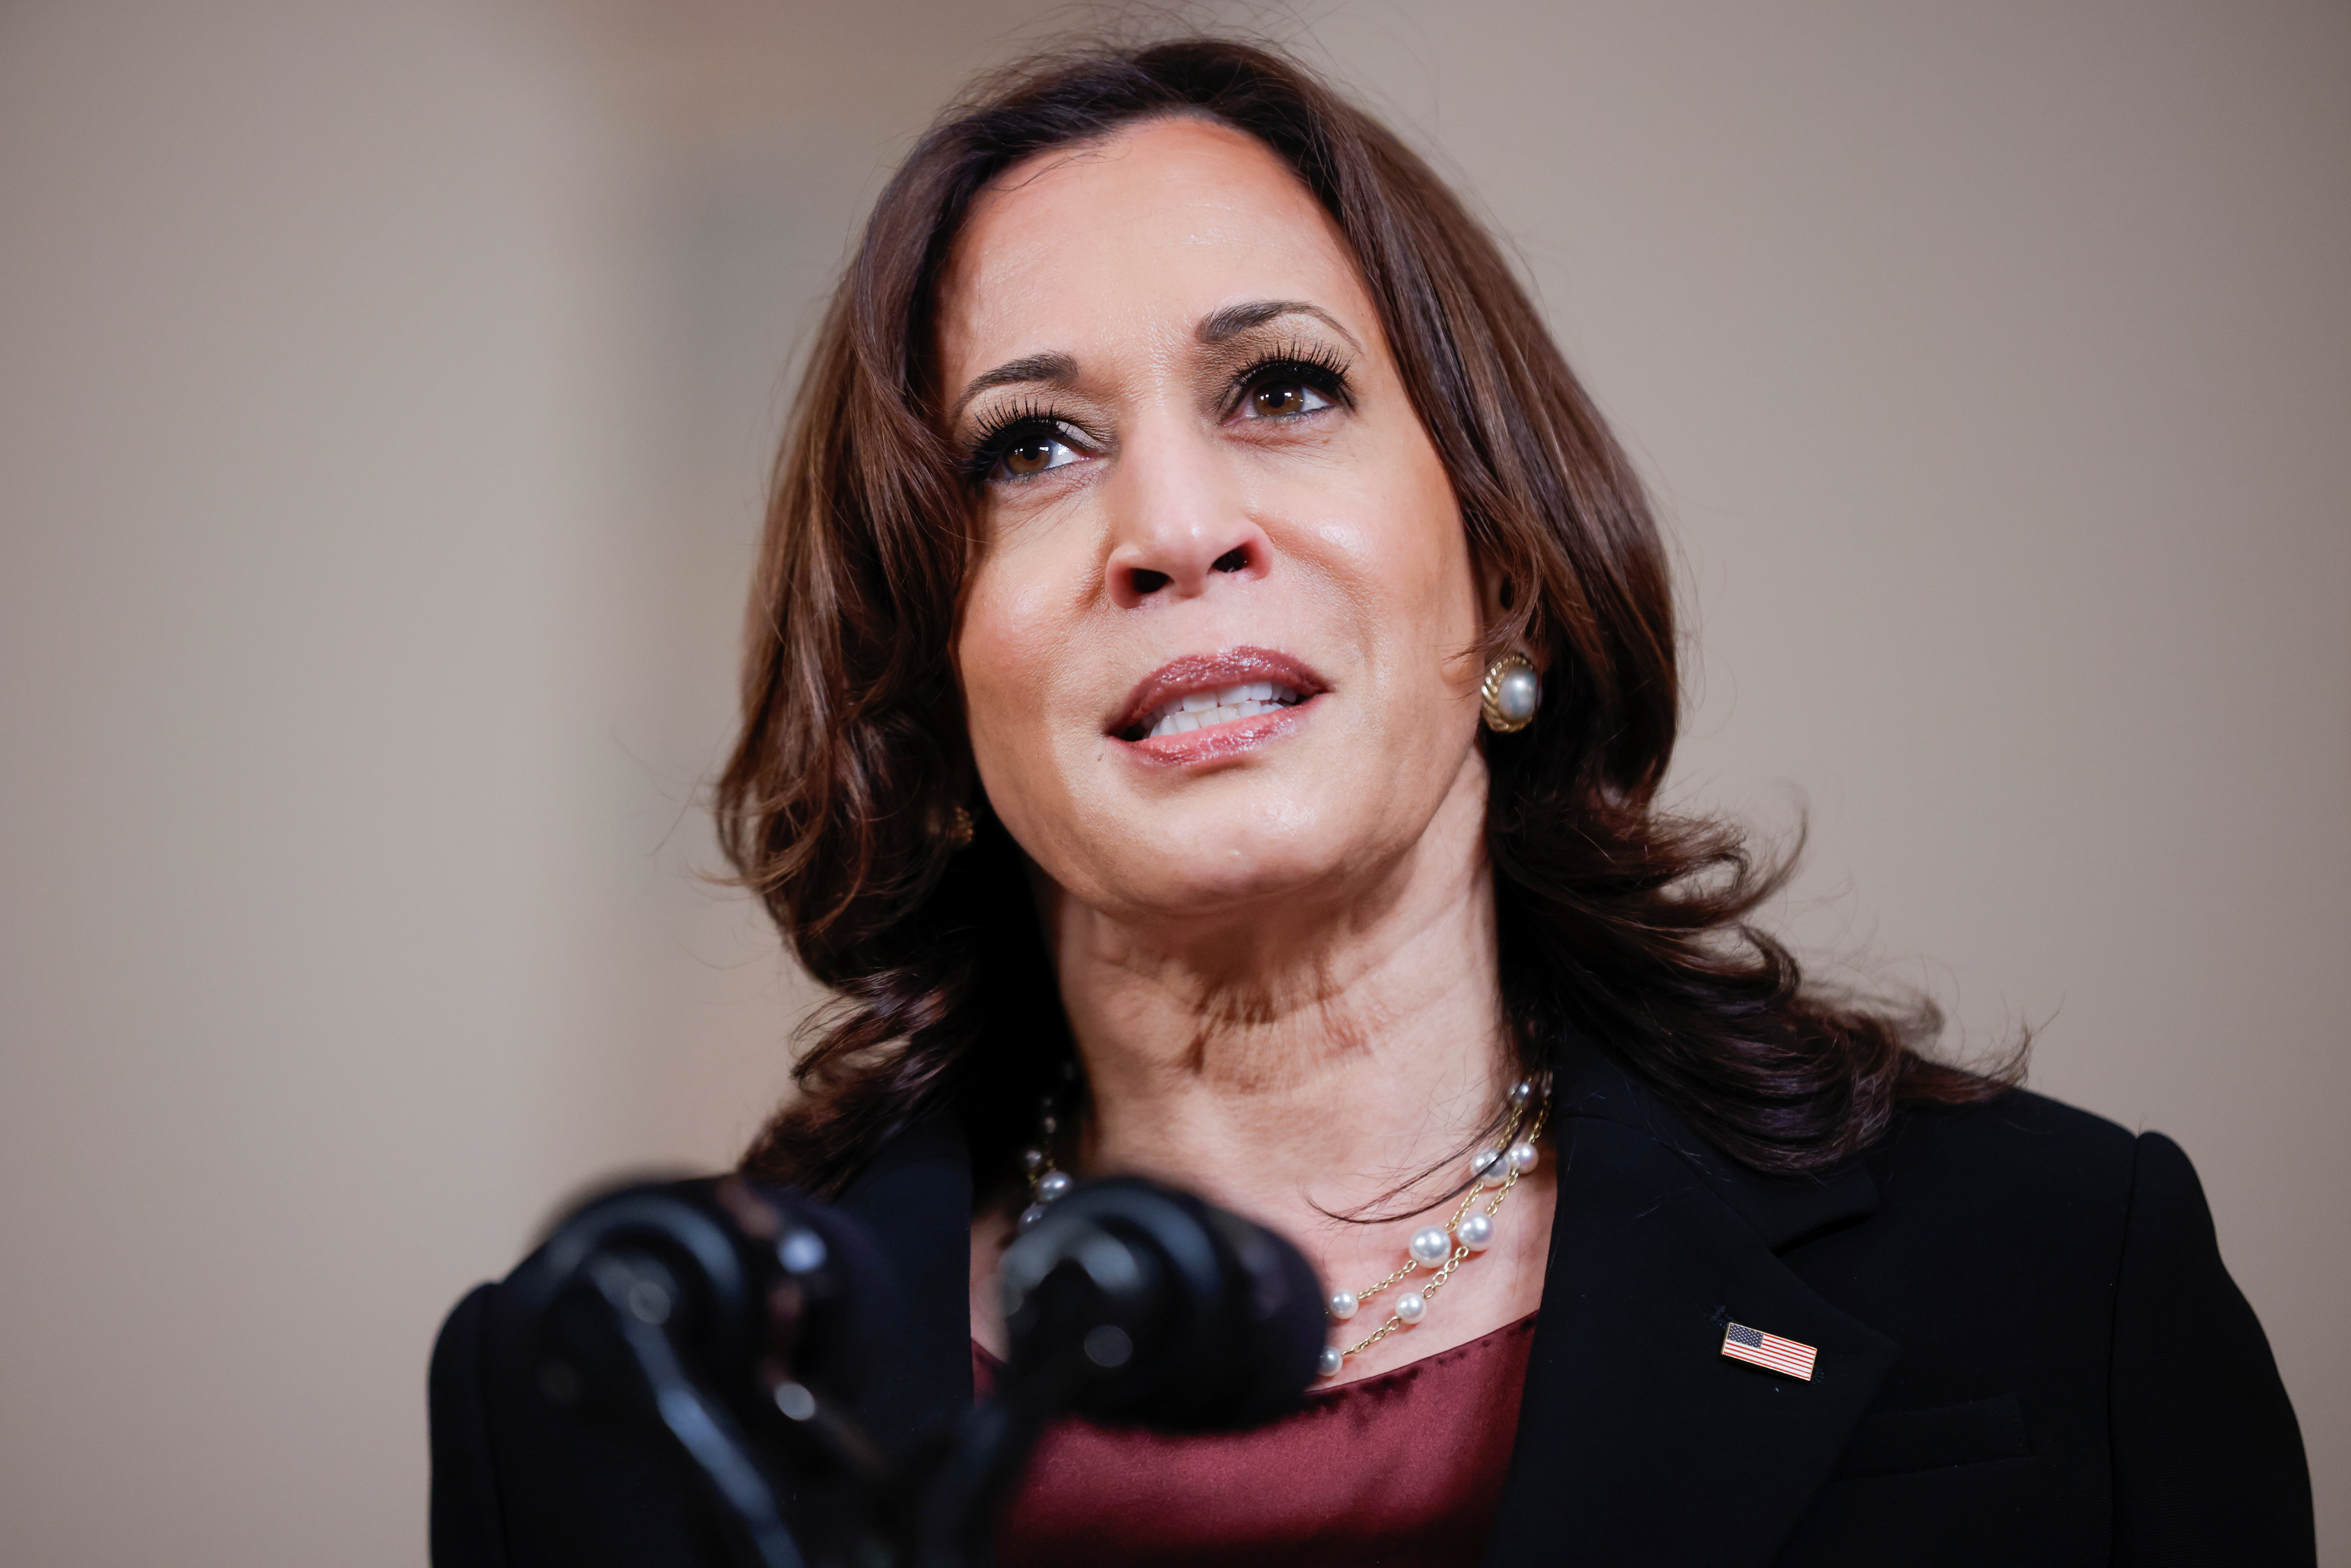 U.S. Vice President Kamala Harris speaks after a jury reached guilty verdicts in the murder trial of former Minneapolis police officer Derek Chauvin stemming from George Floyd's deadly arrest, in the Cross Hall at the White House in Washington, U.S., April 20, 2021. REUTERS/Tom Brenner